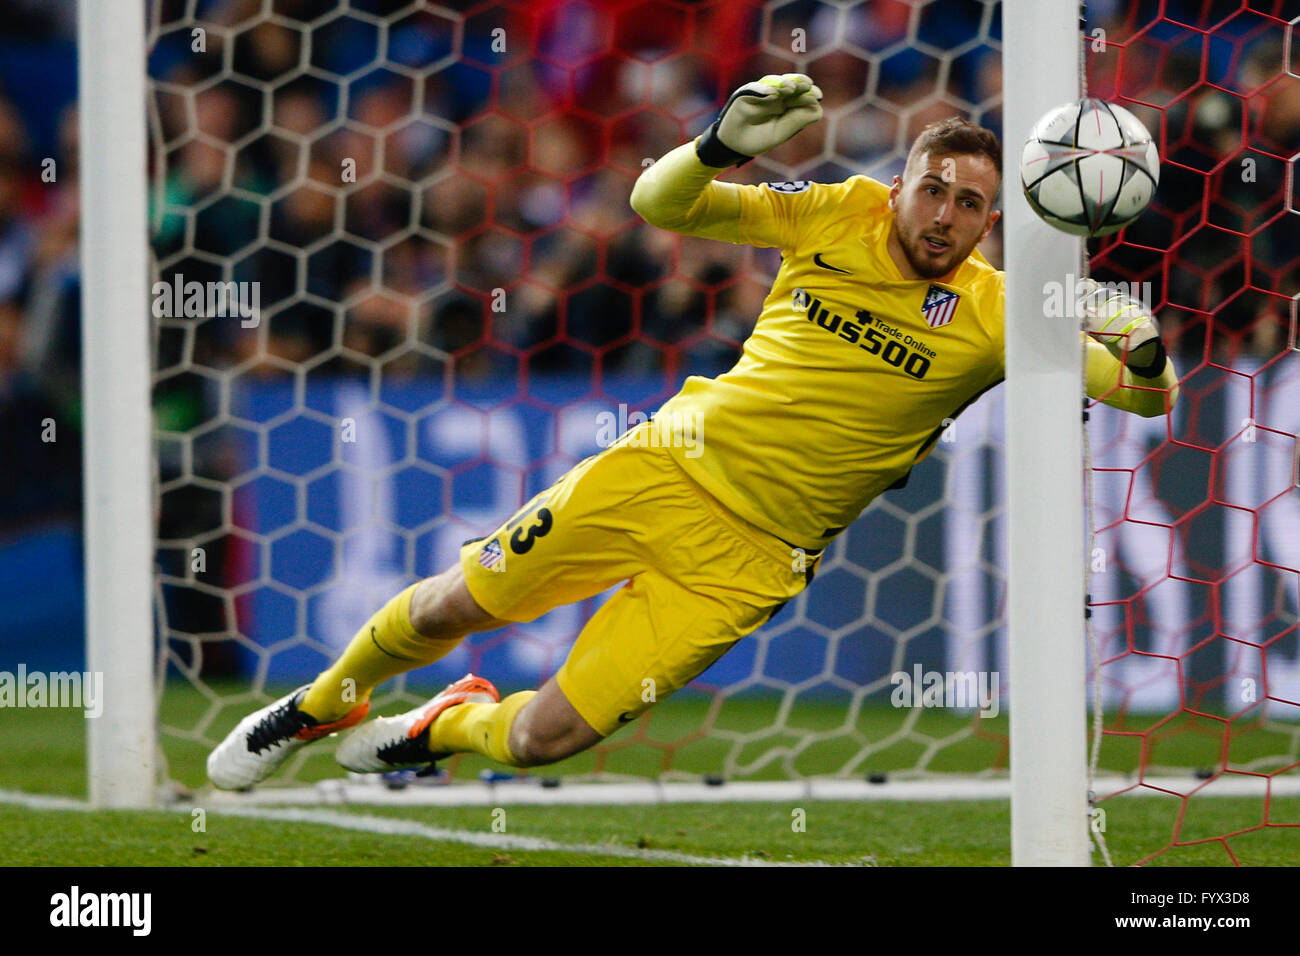 Madrid Spain 27th Apr 2016 Jan Oblak 13 Atletico Madrid